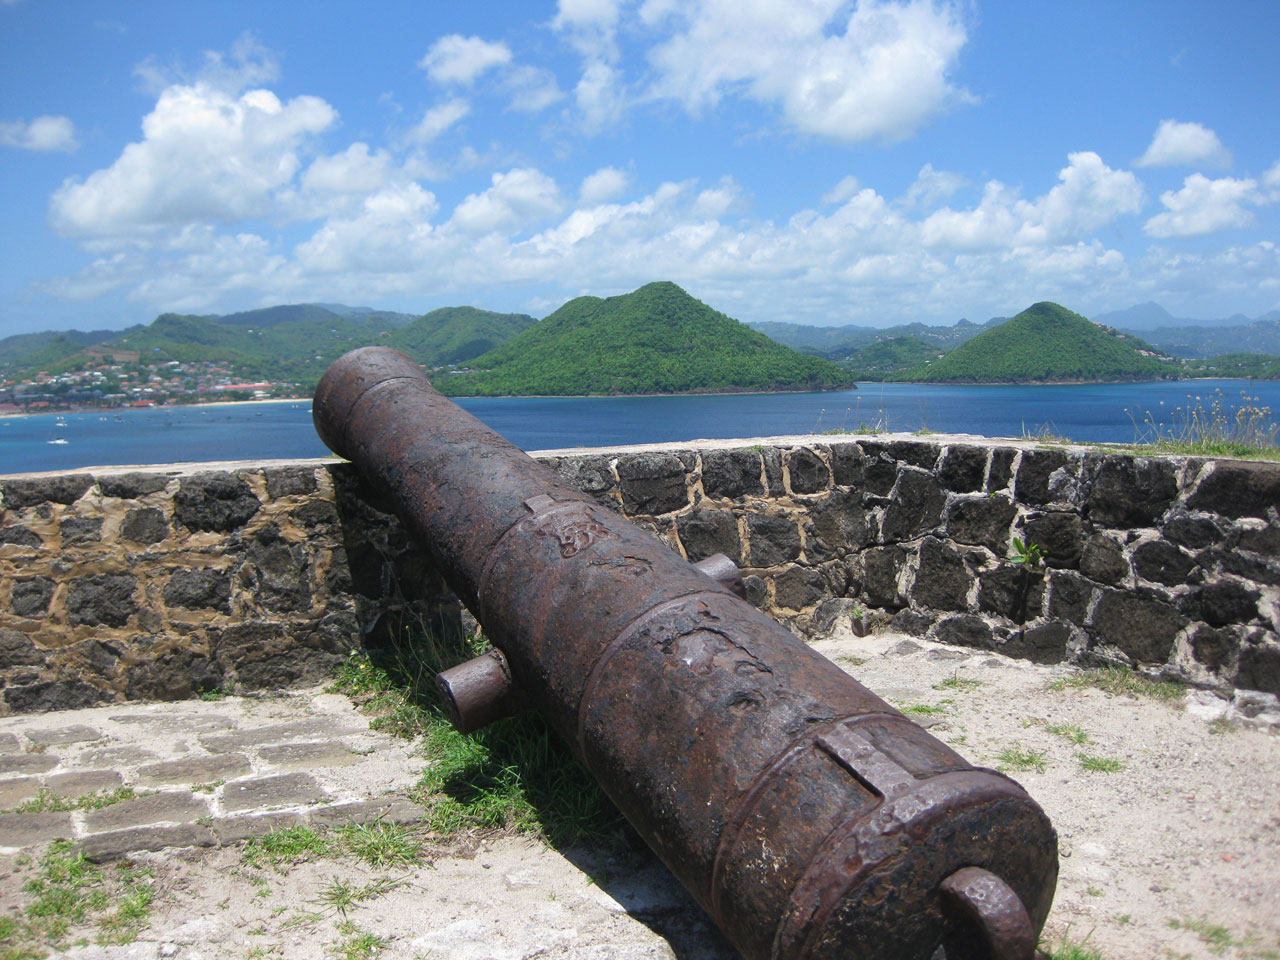 The view from Fort Rodney, Pigeon Island, Saint Lucia